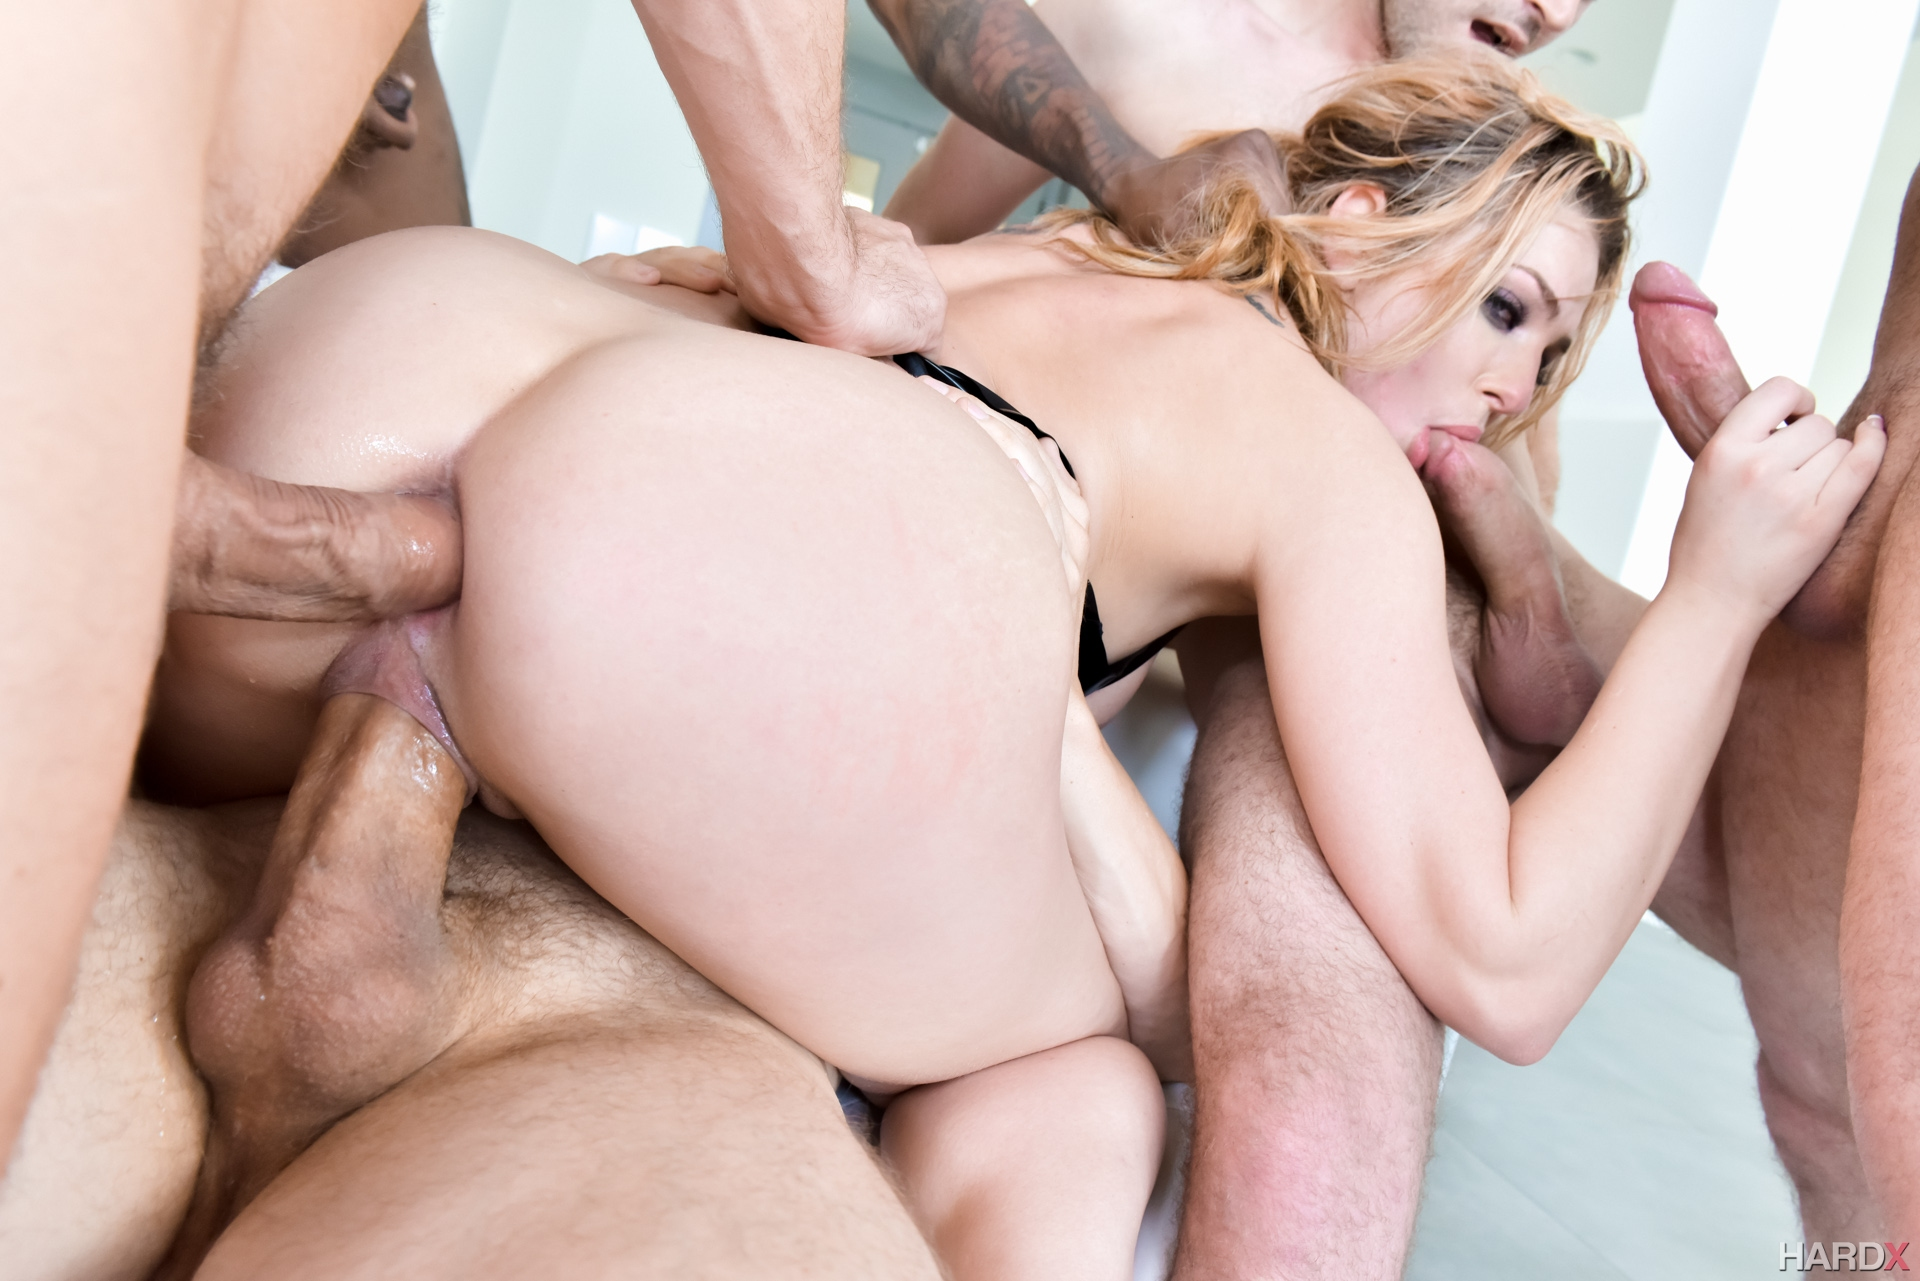 naked girls getting triple penetrated